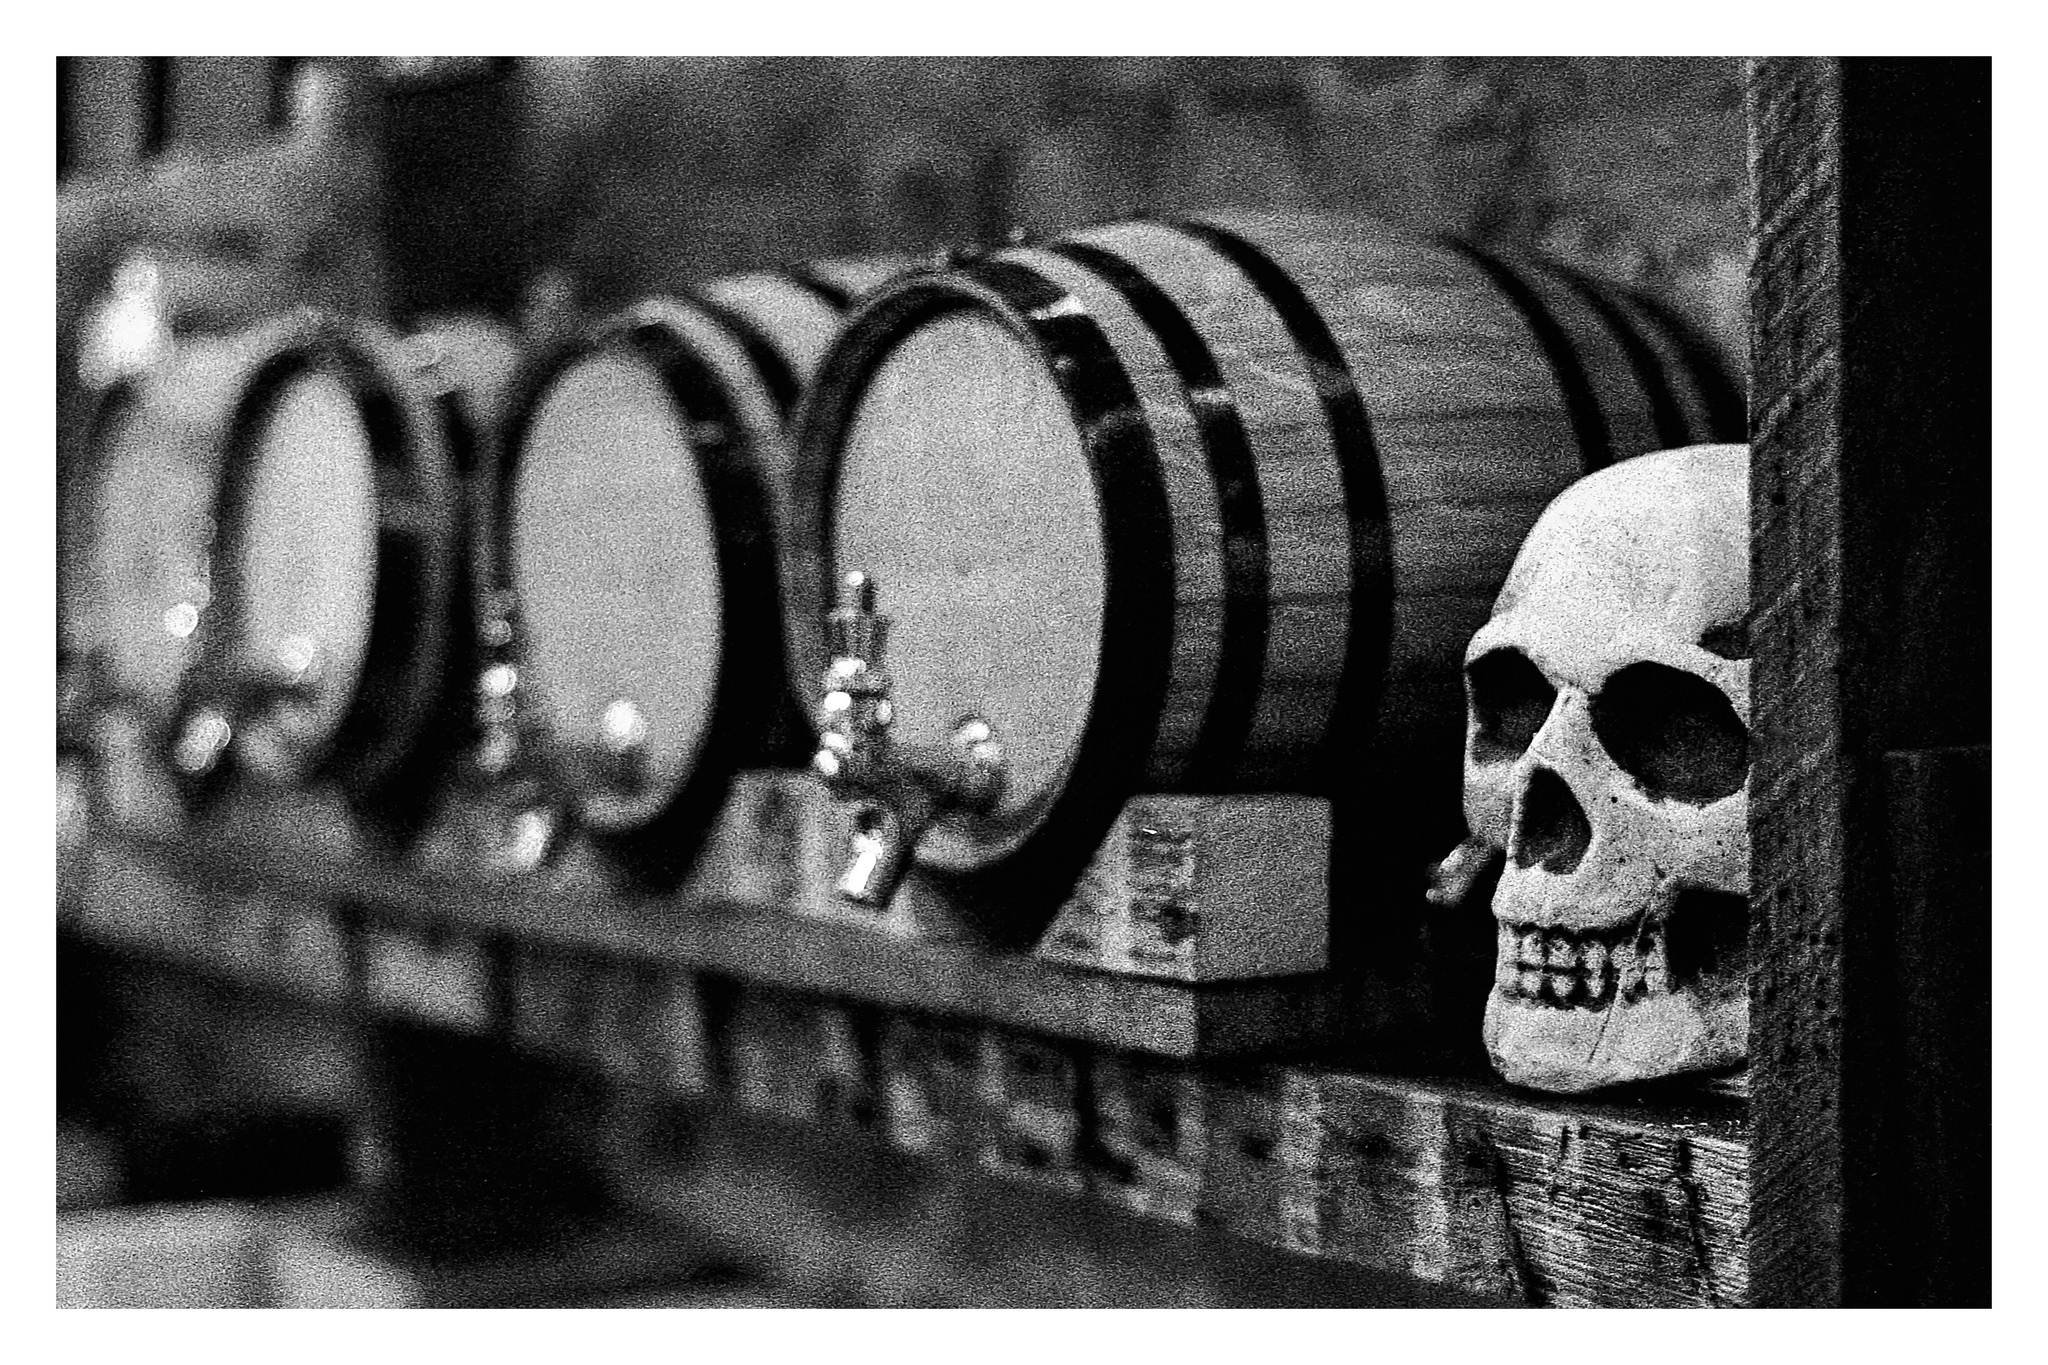 Skull and Taps in Toxic - Nikon F5 with 50mm f/1.4 lens at f/2.8 in A-Priority mode on Kodak TMAX P3200 film